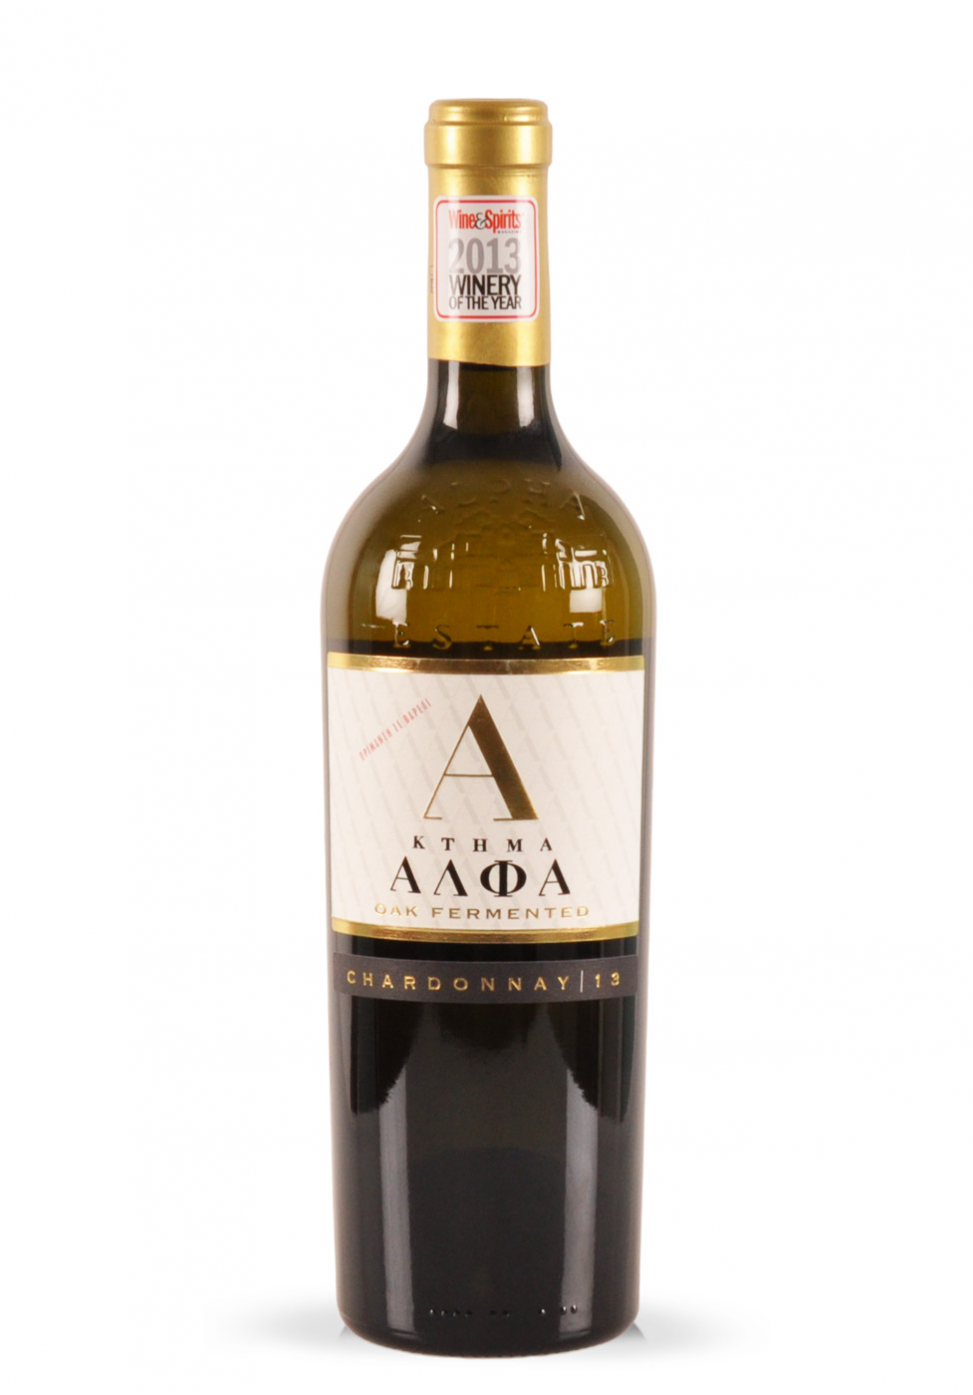 Vin Alpha Estate, Chardonnay Oak Fermented, 2013 (0.75L)